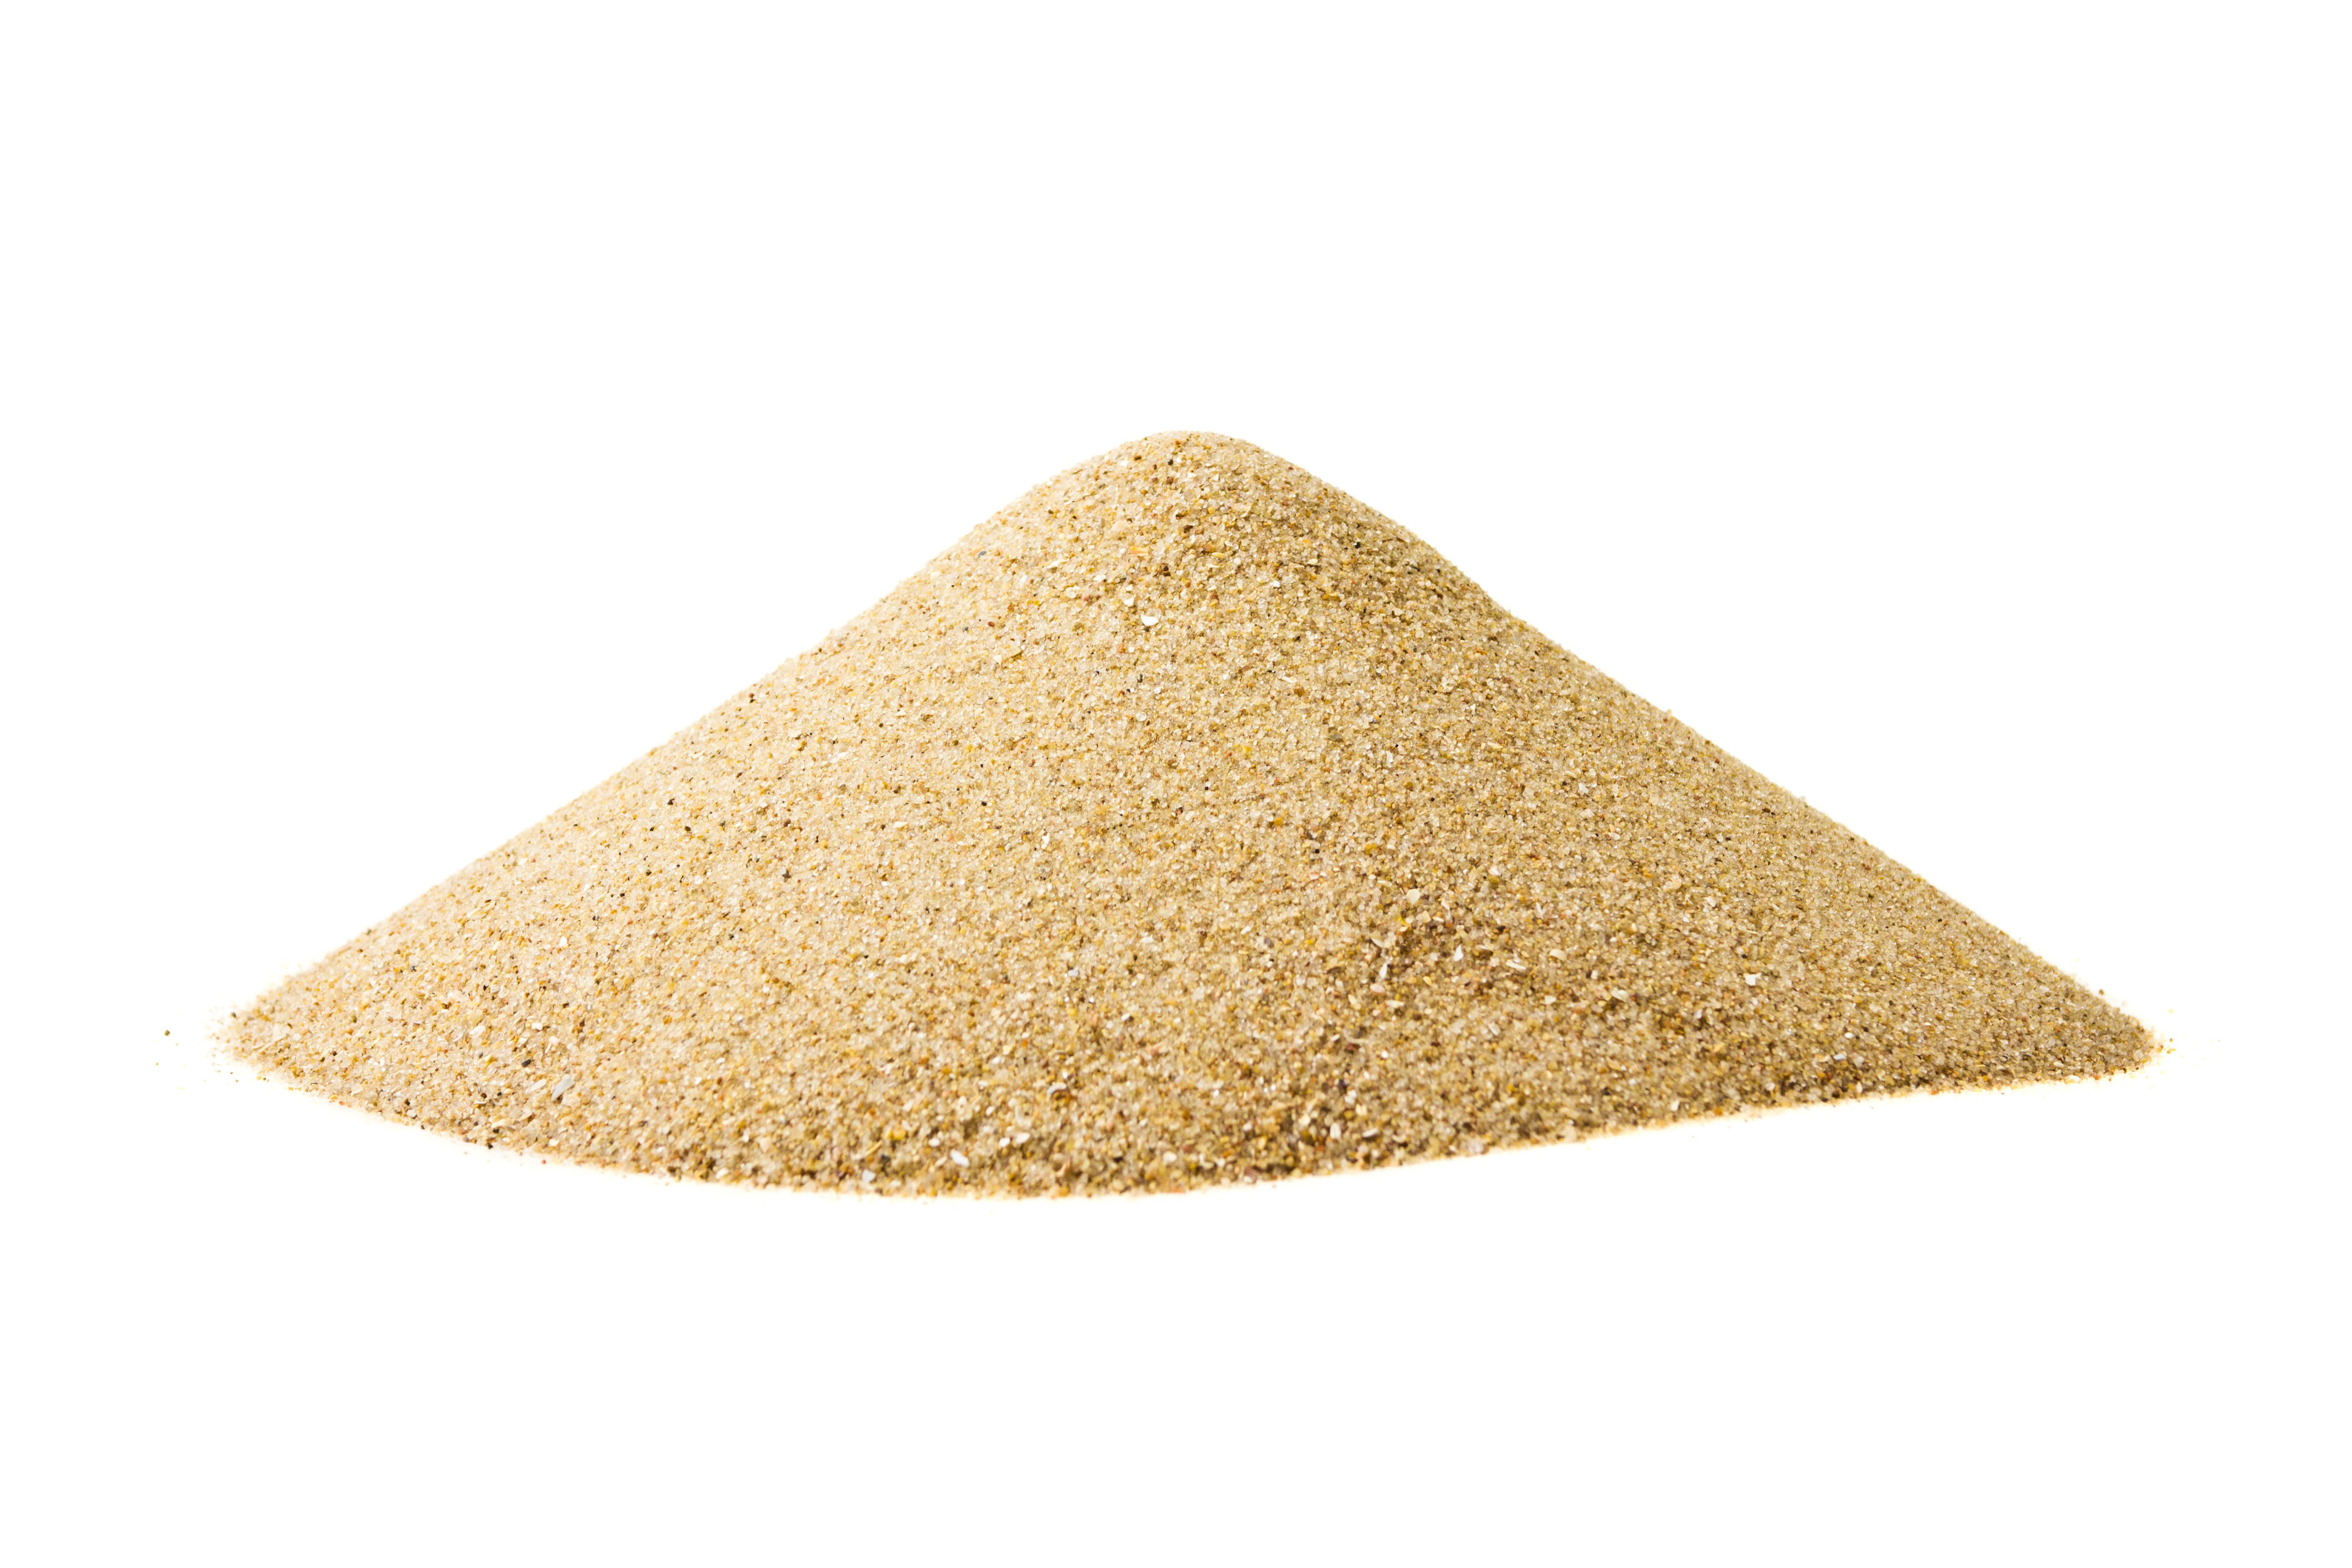 Sand Pile Clipart Free Clipart - Clipart Kid